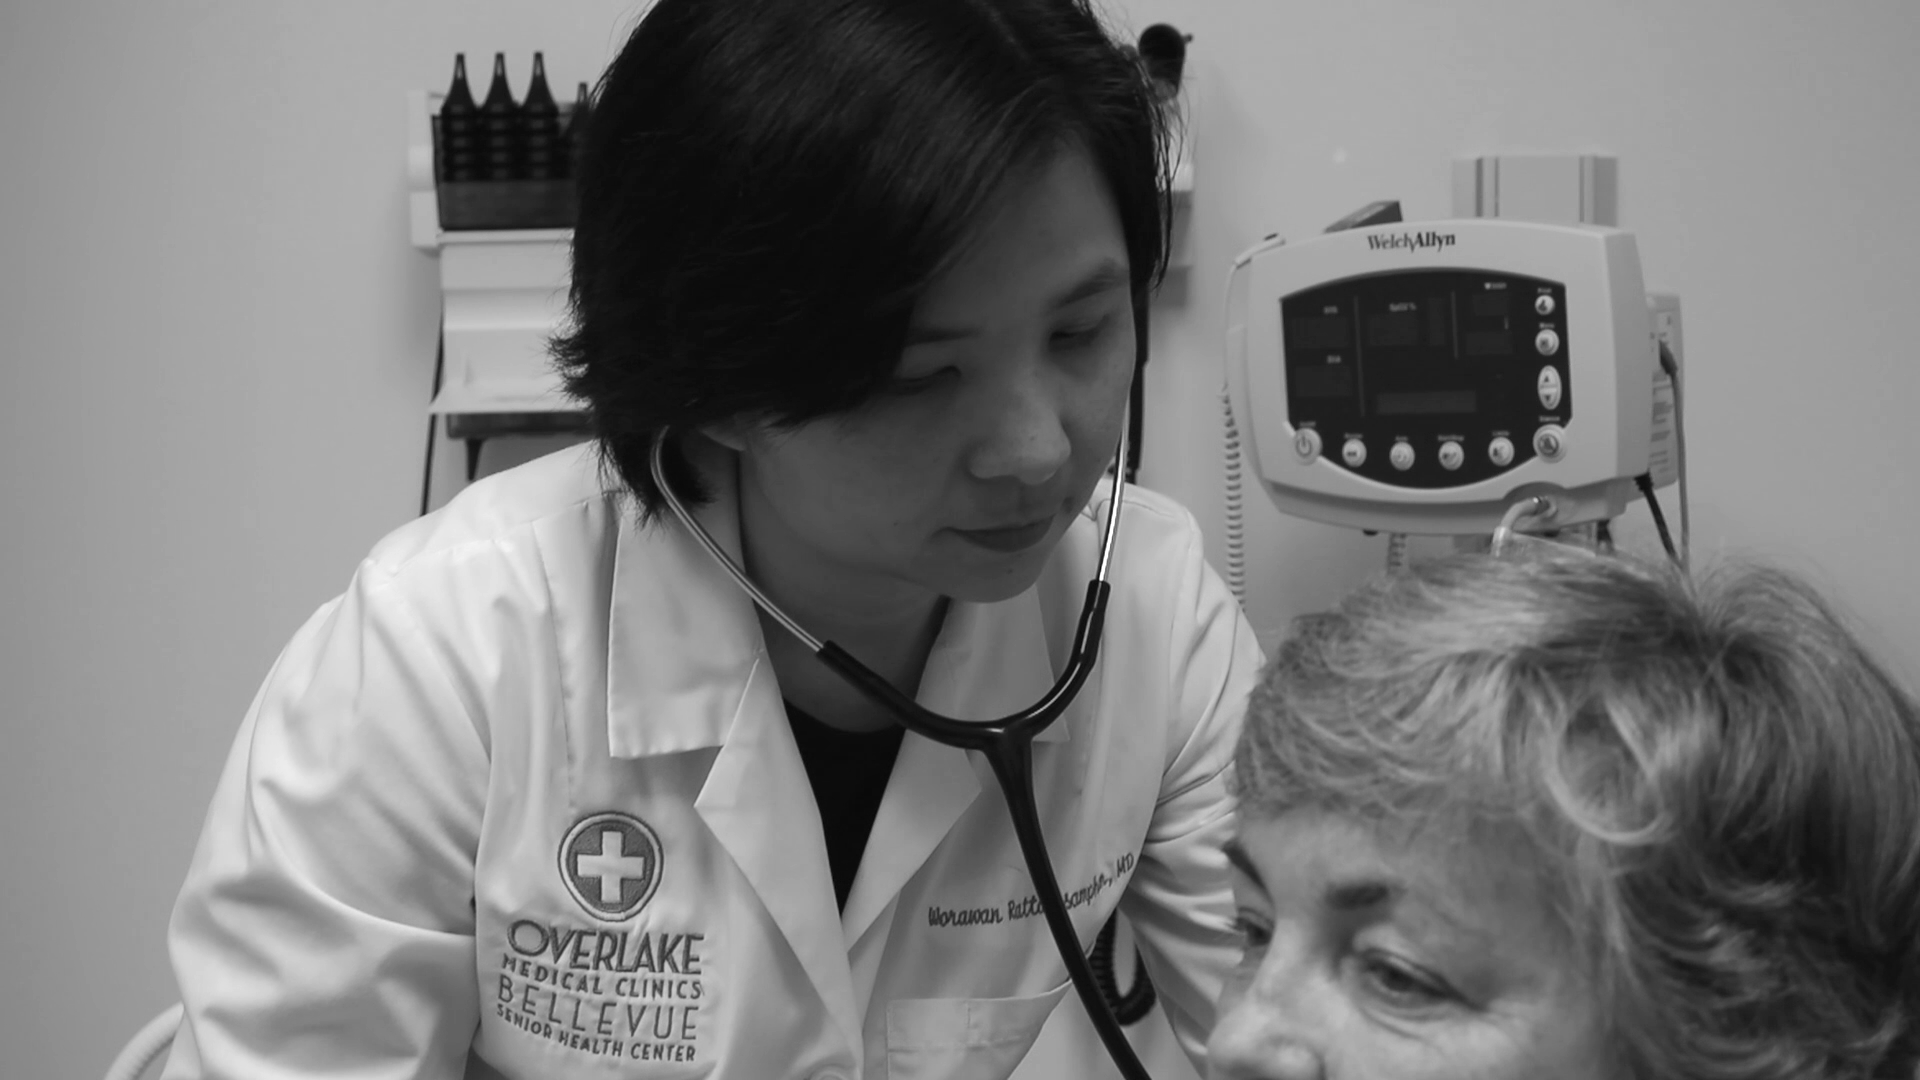 Dr. Rattanasamphan talks about her practice